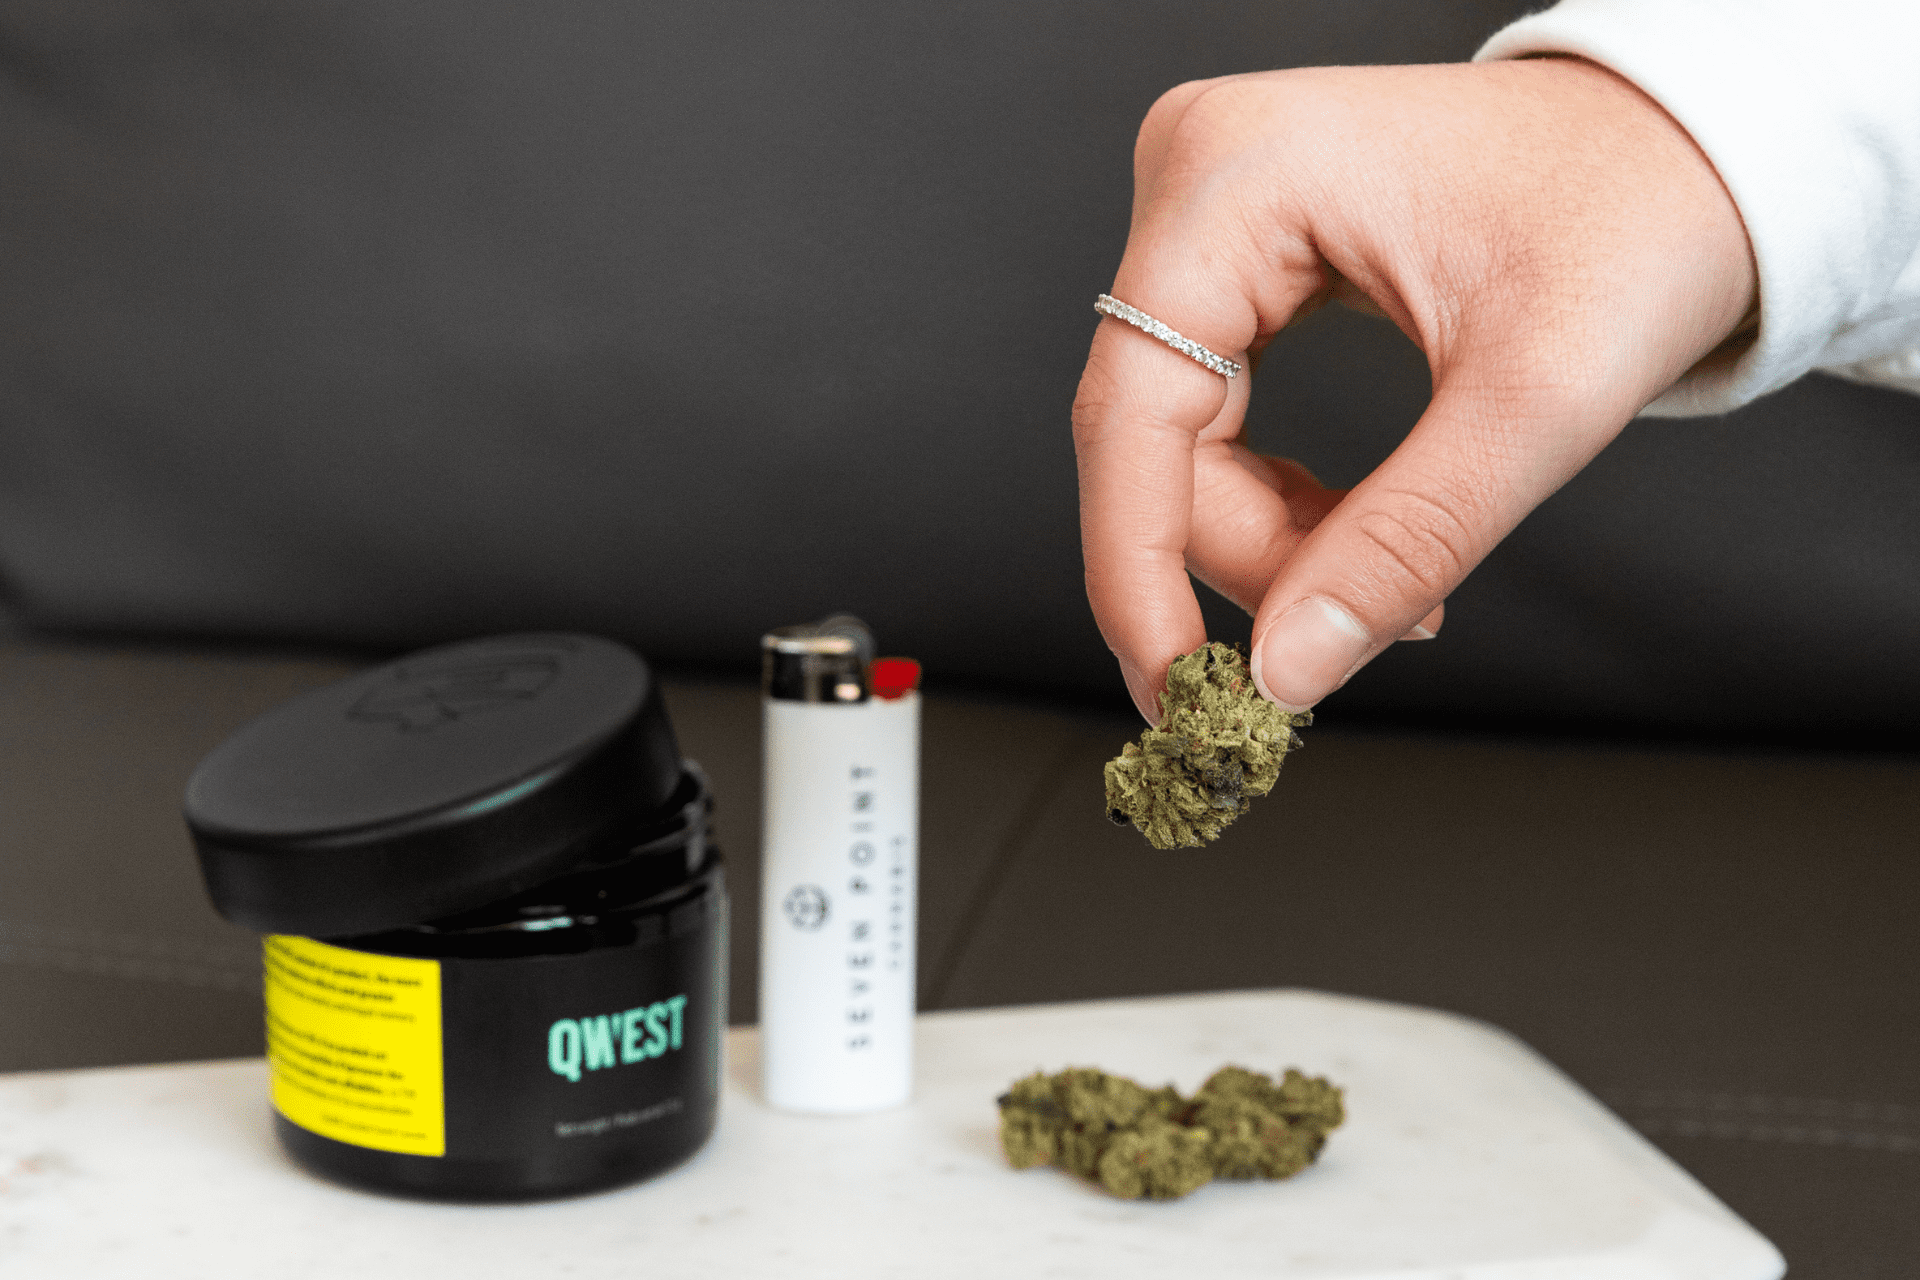 a hand picking up a nug of cannabis and a Seven Point lighter